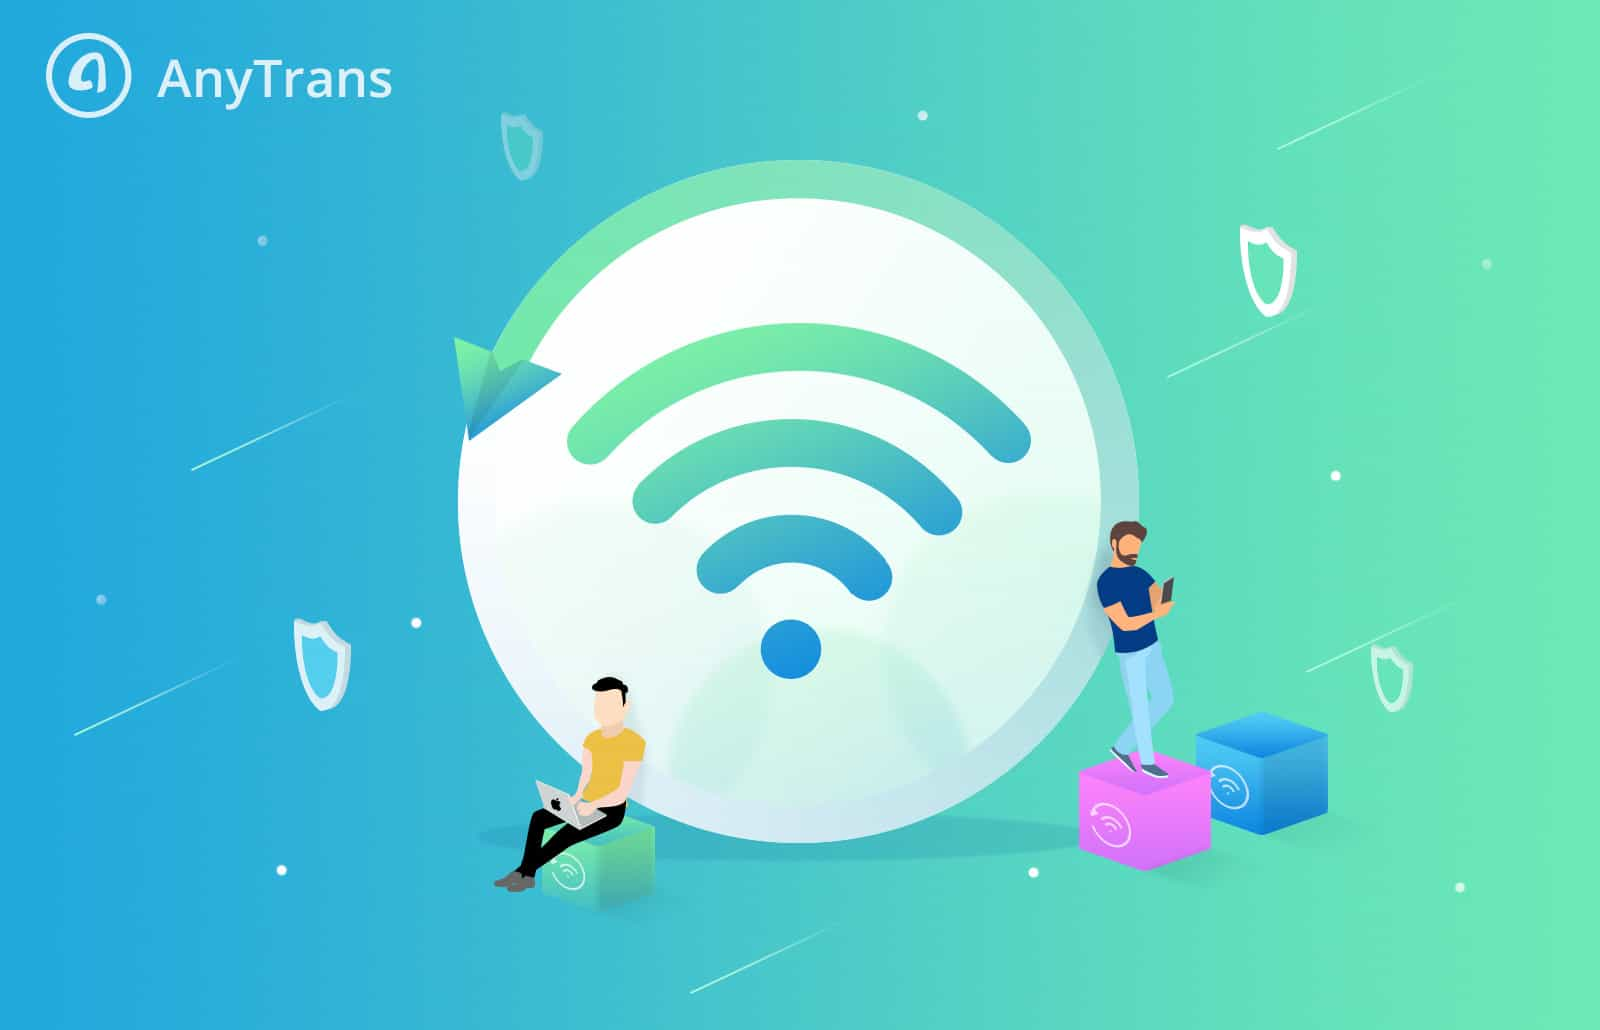 With AnyTrans' new Air Backup feature, you can wirelessly and automatically back up all your iOS devices.